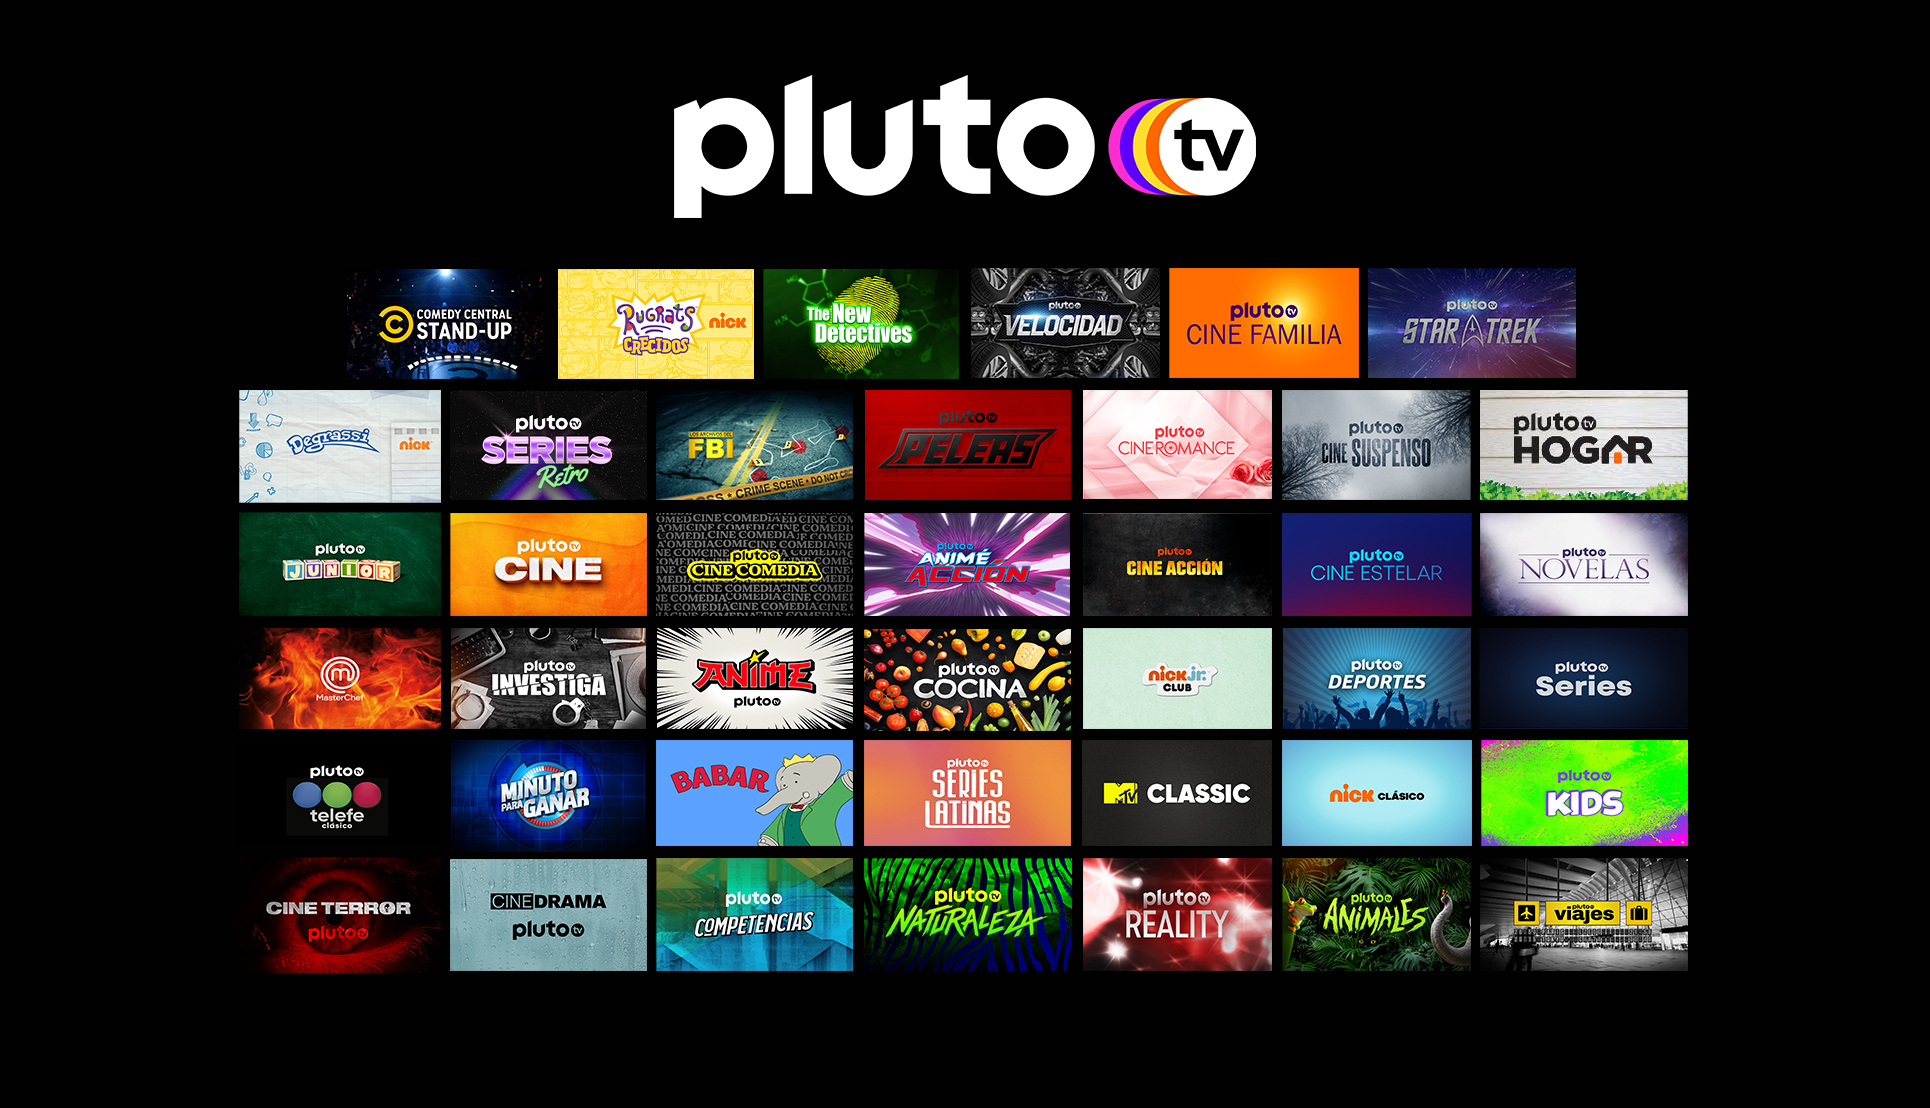 Streaming-Blog-Pluto-TV-Logo-Above-Several-Images-Showcasing-Shows-on-the-Service.jpg